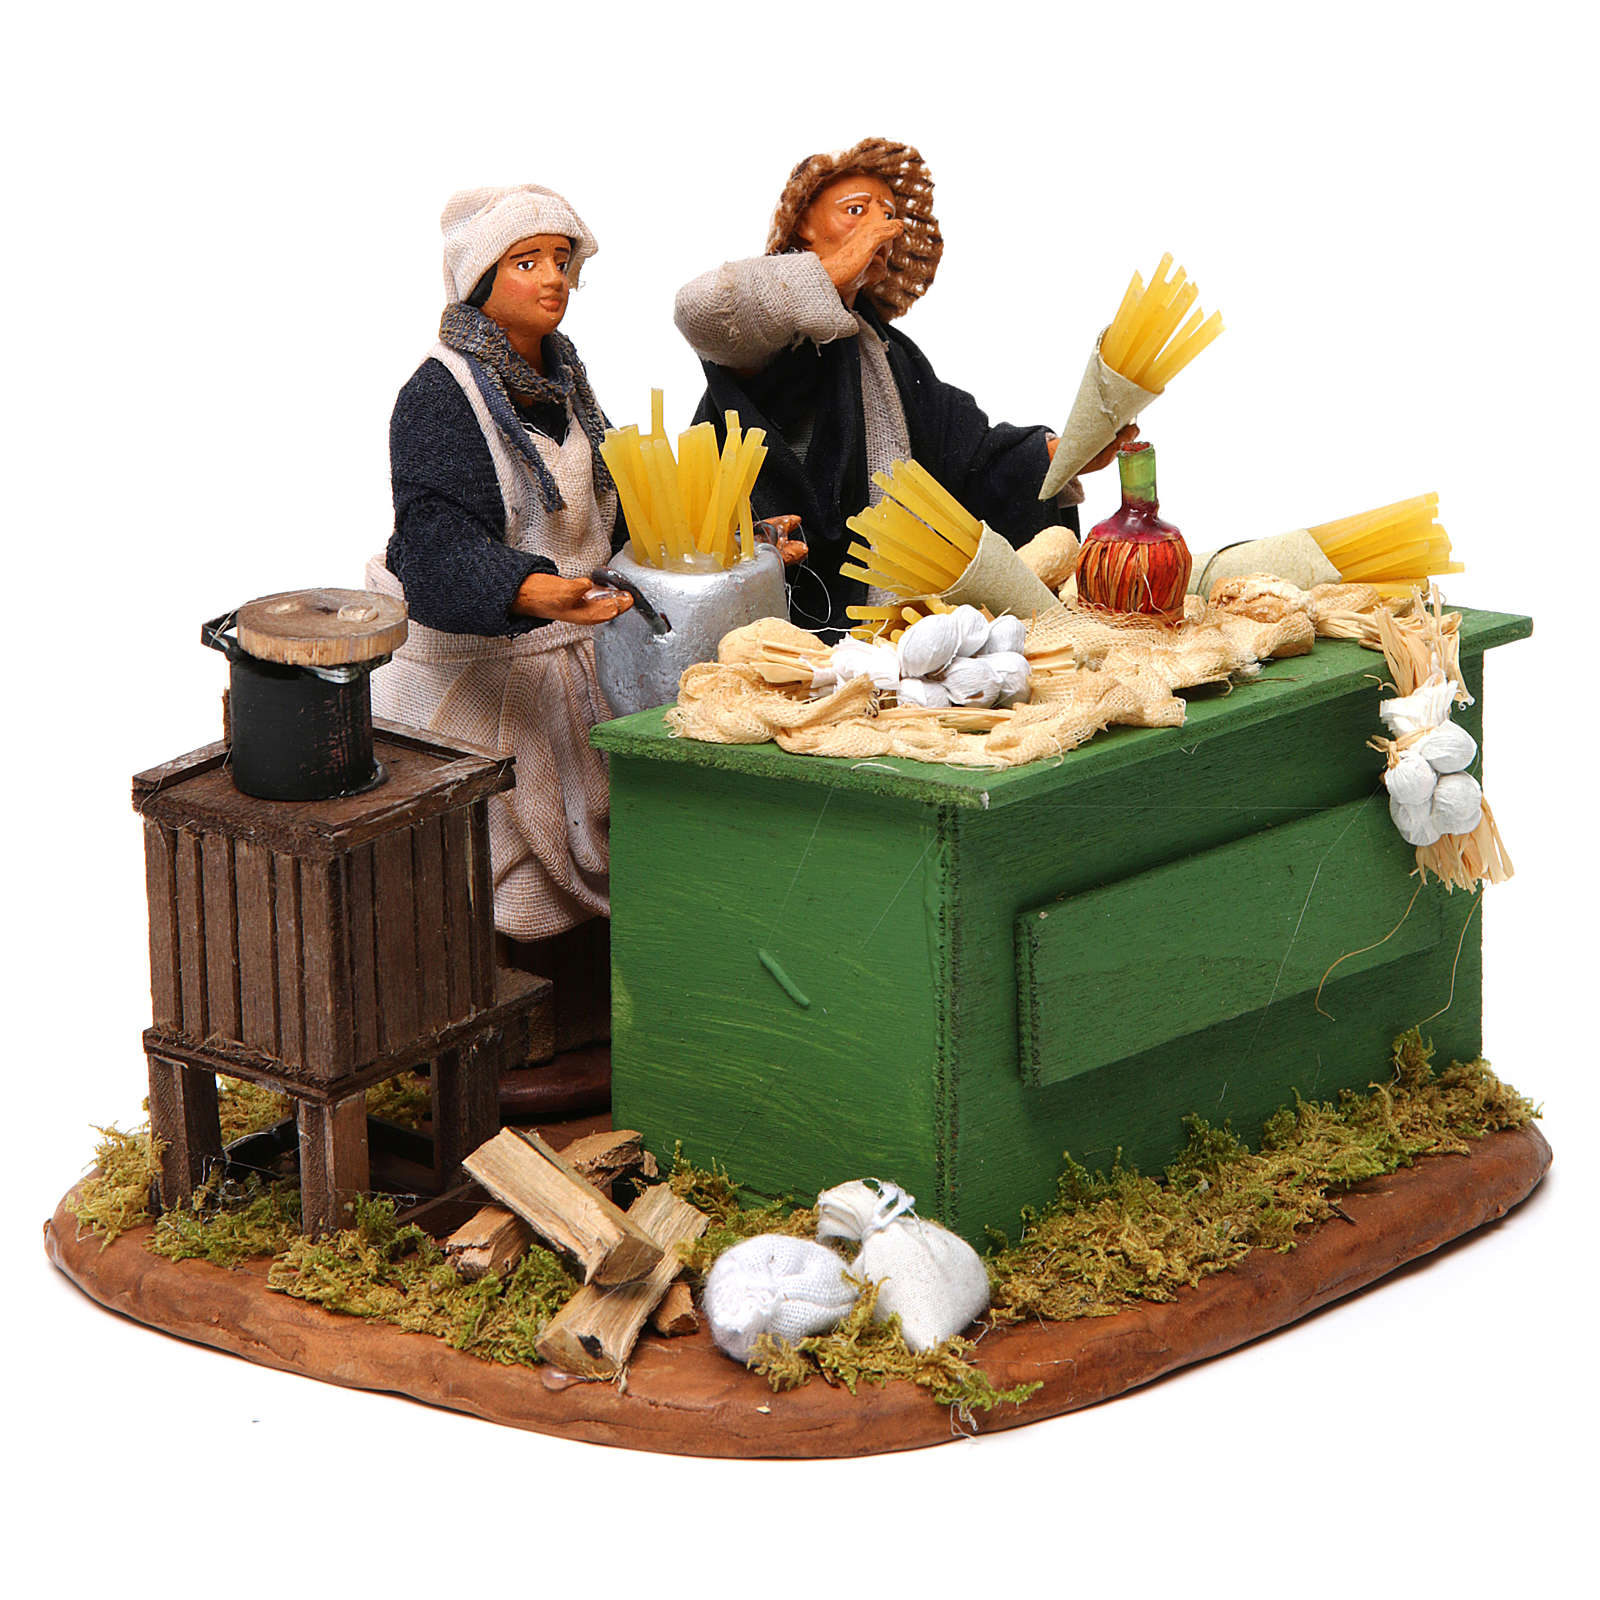 Man making pasta with stall, Neapolitan nativity figurine 12cm 4